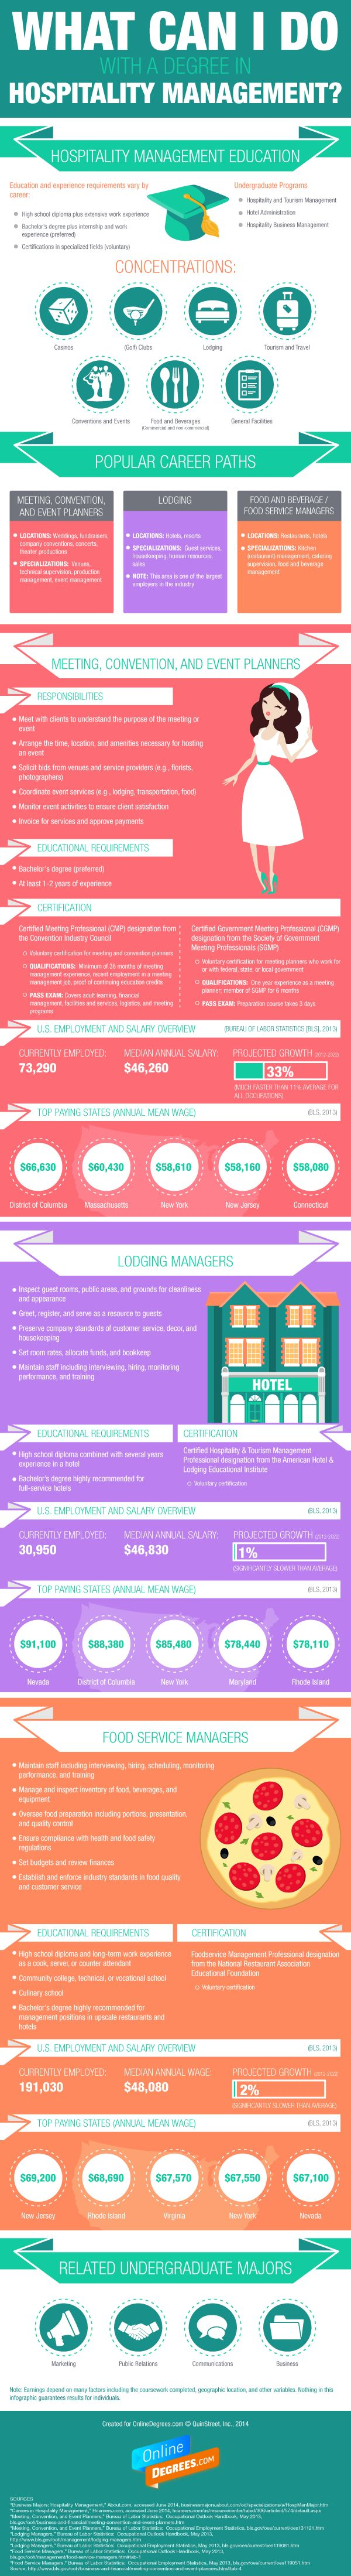 ideas about tourism management tourism what can i do a degree in hospitality management